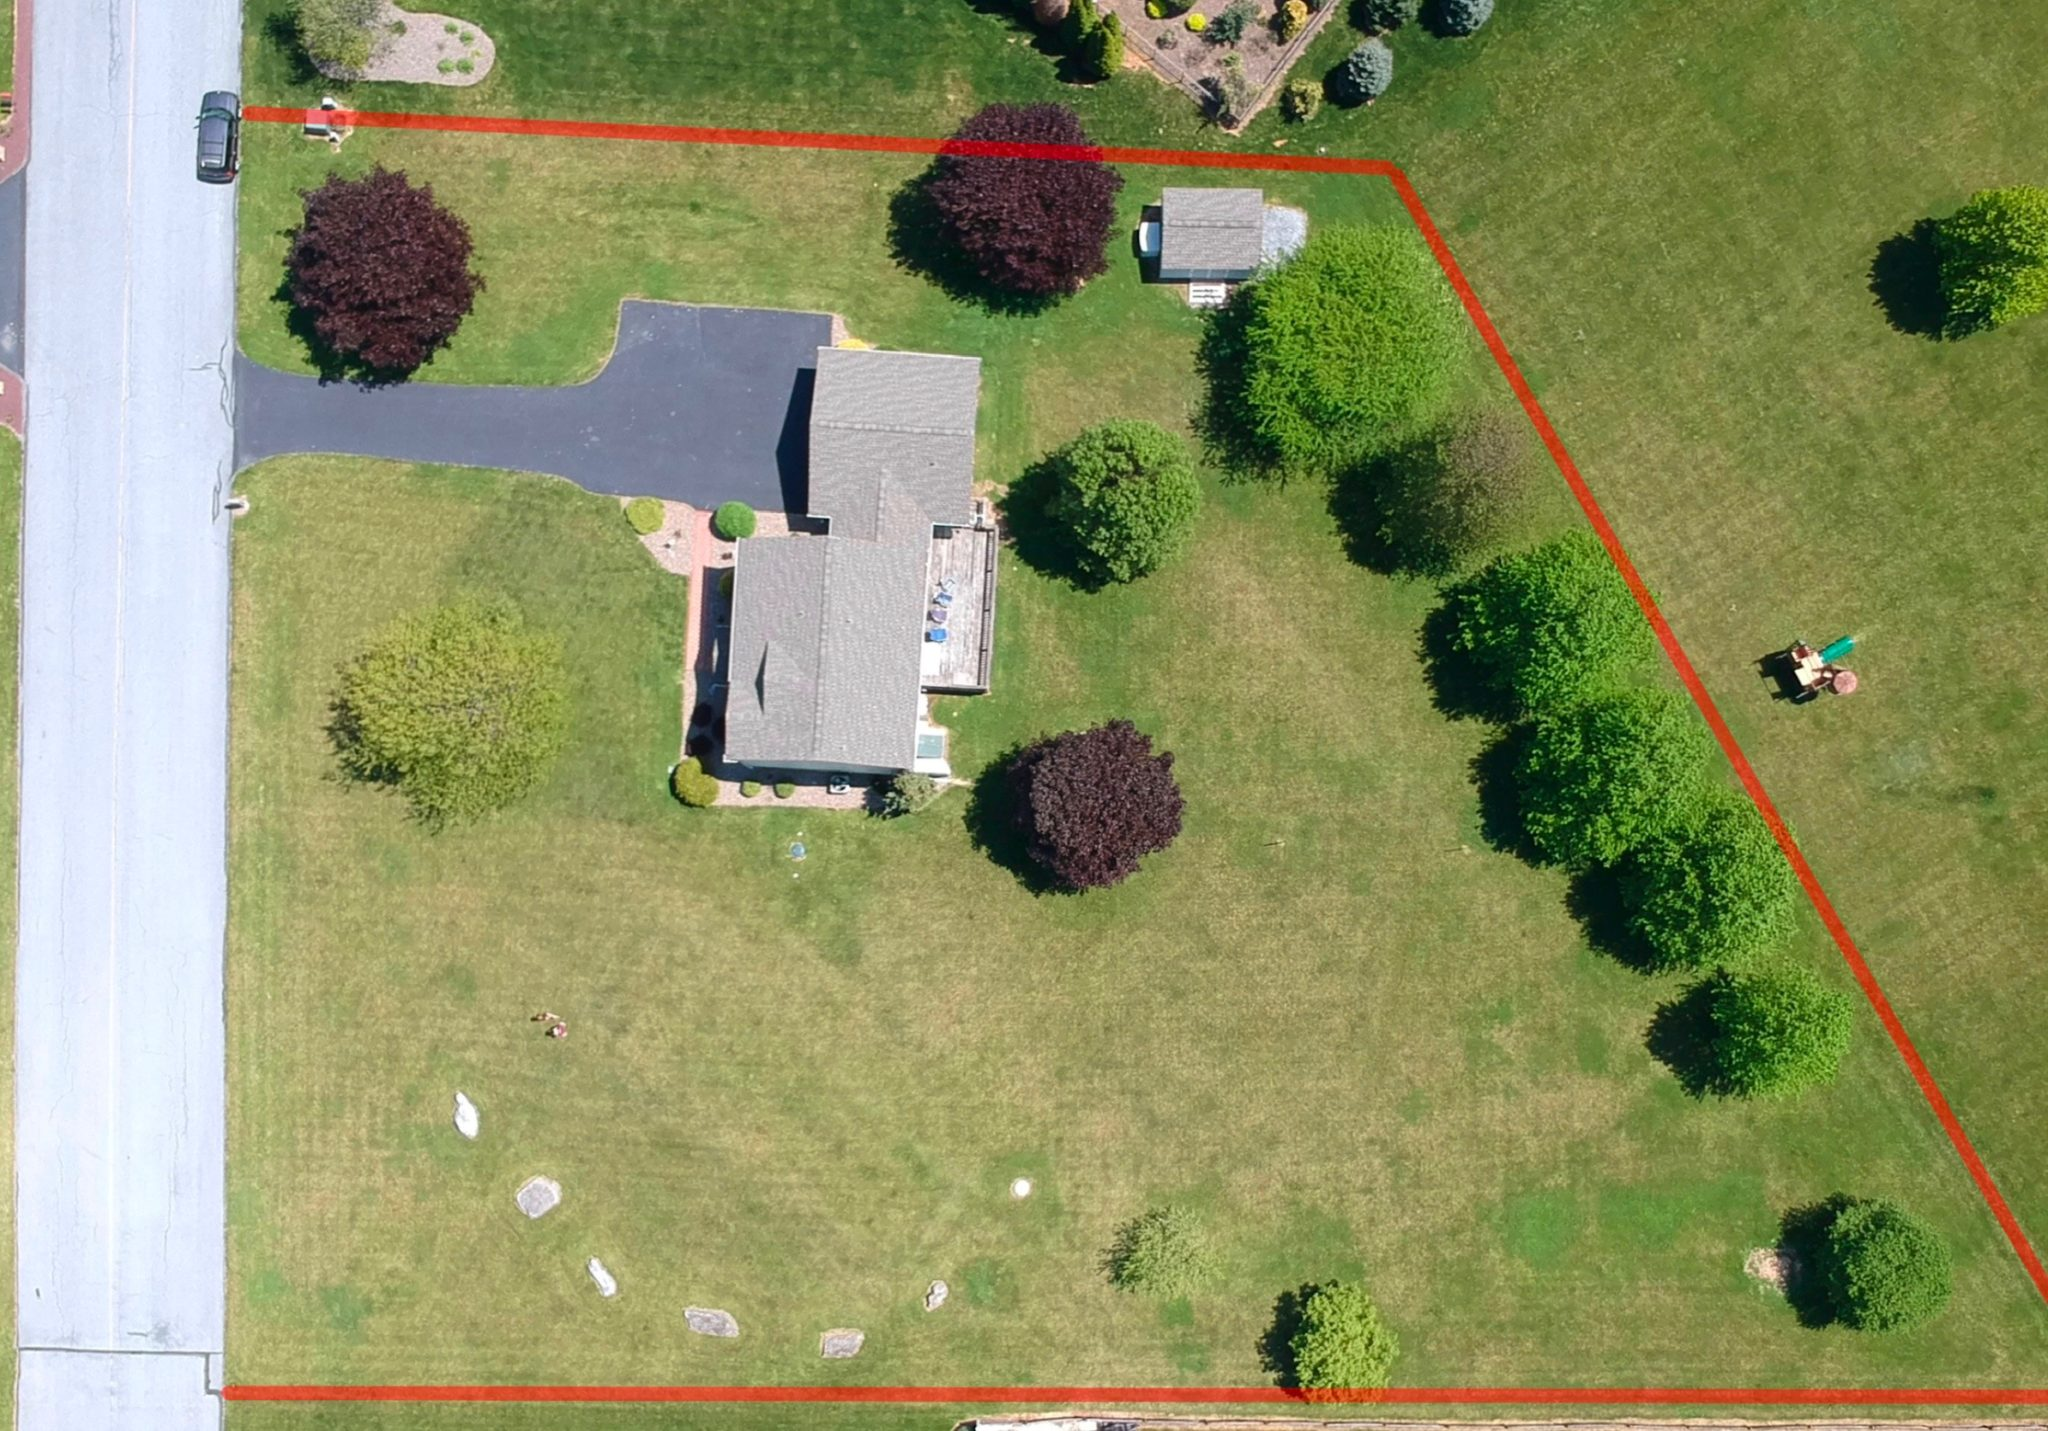 22 Norma Ln, Richland - Outside Overhead View With Parcel Lines